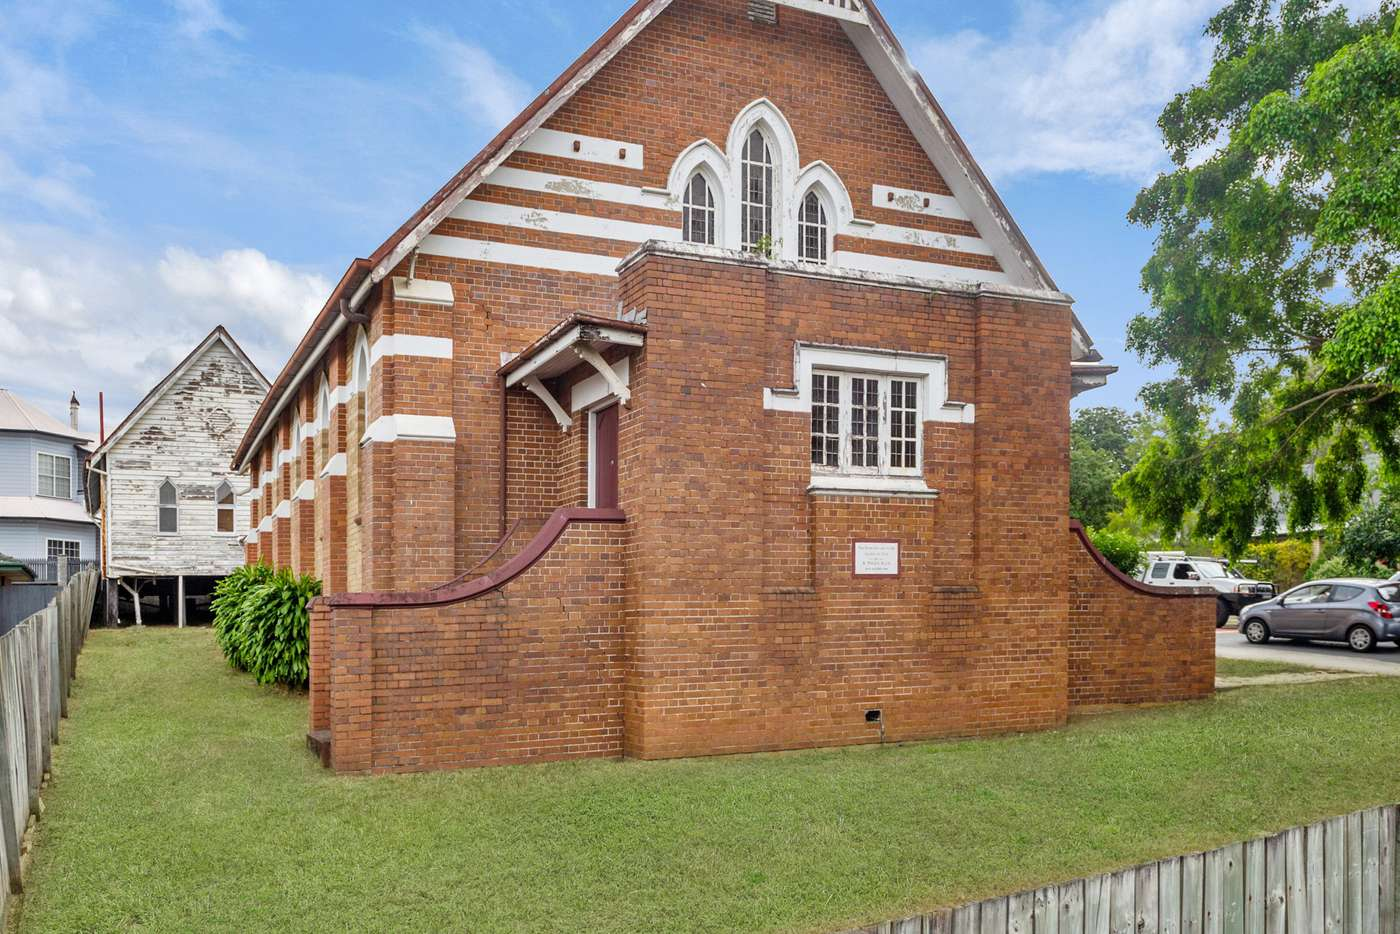 Main view of Homely house listing, 12 Davidson Street, Newmarket QLD 4051